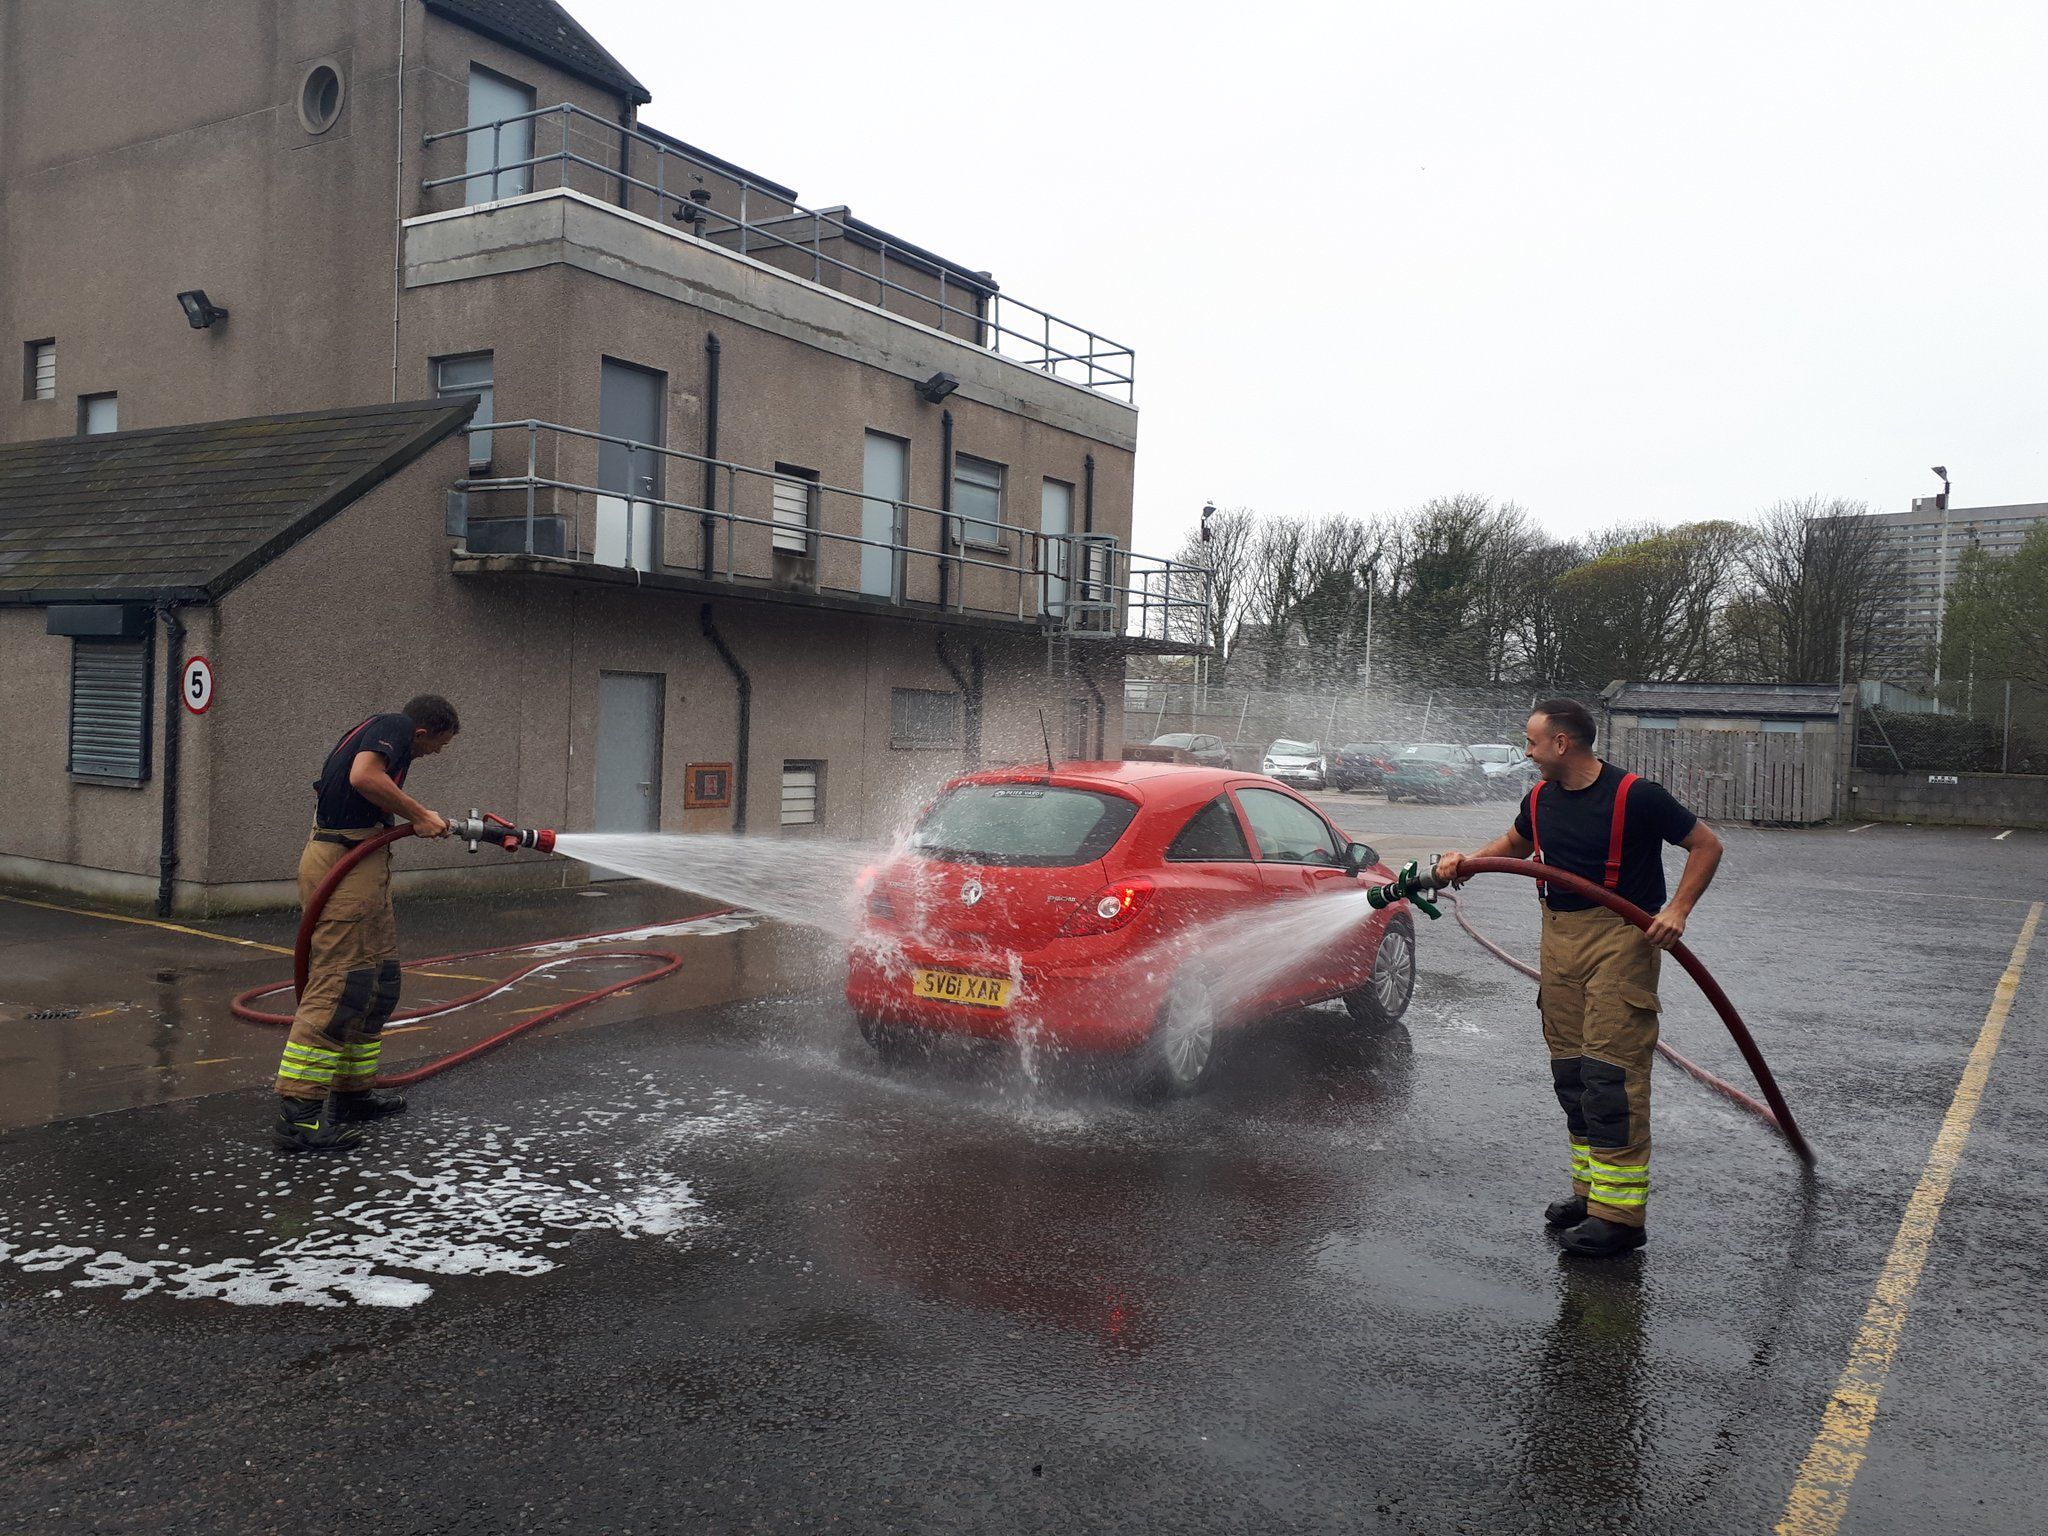 Firefighters raised cash by washing cars at Central Fire Station in Aberdeen